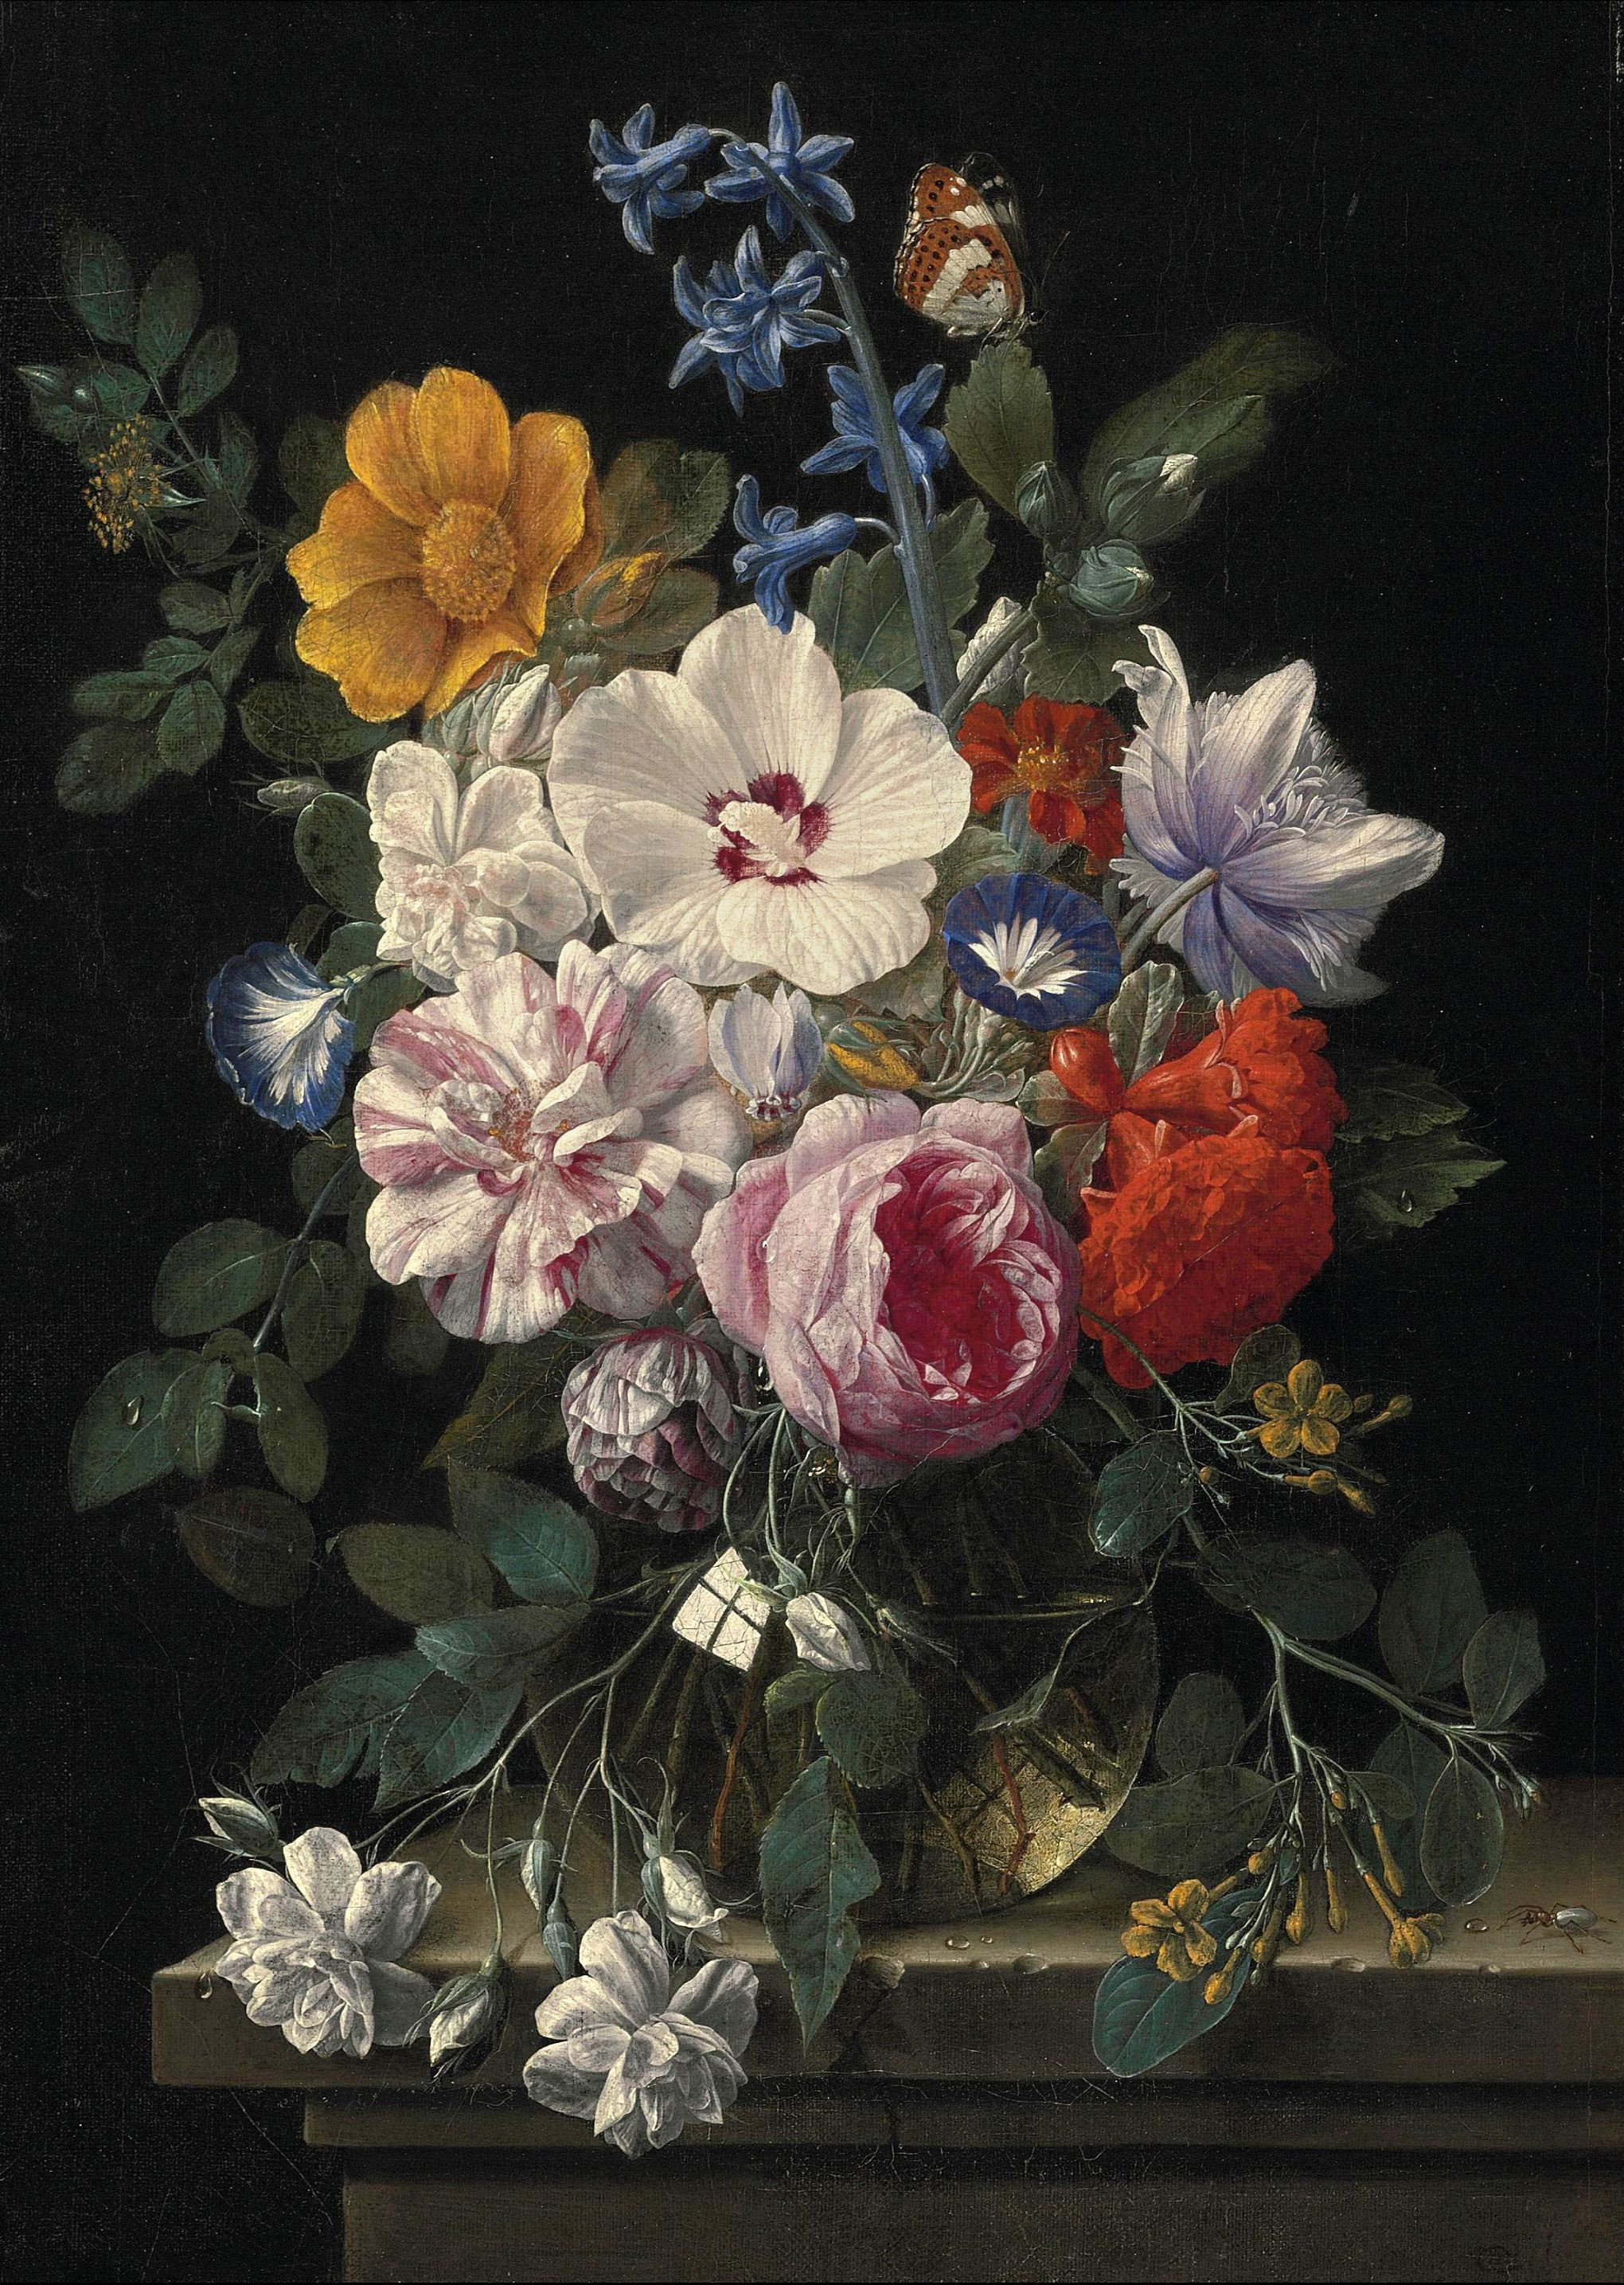 vase of flowers de heem of nicolaes van veerendael flowers in a glass vase butterfly and within nicolaes van veerendael flowers in a glass vase butterfly and beetle on a stone ledge 17th century